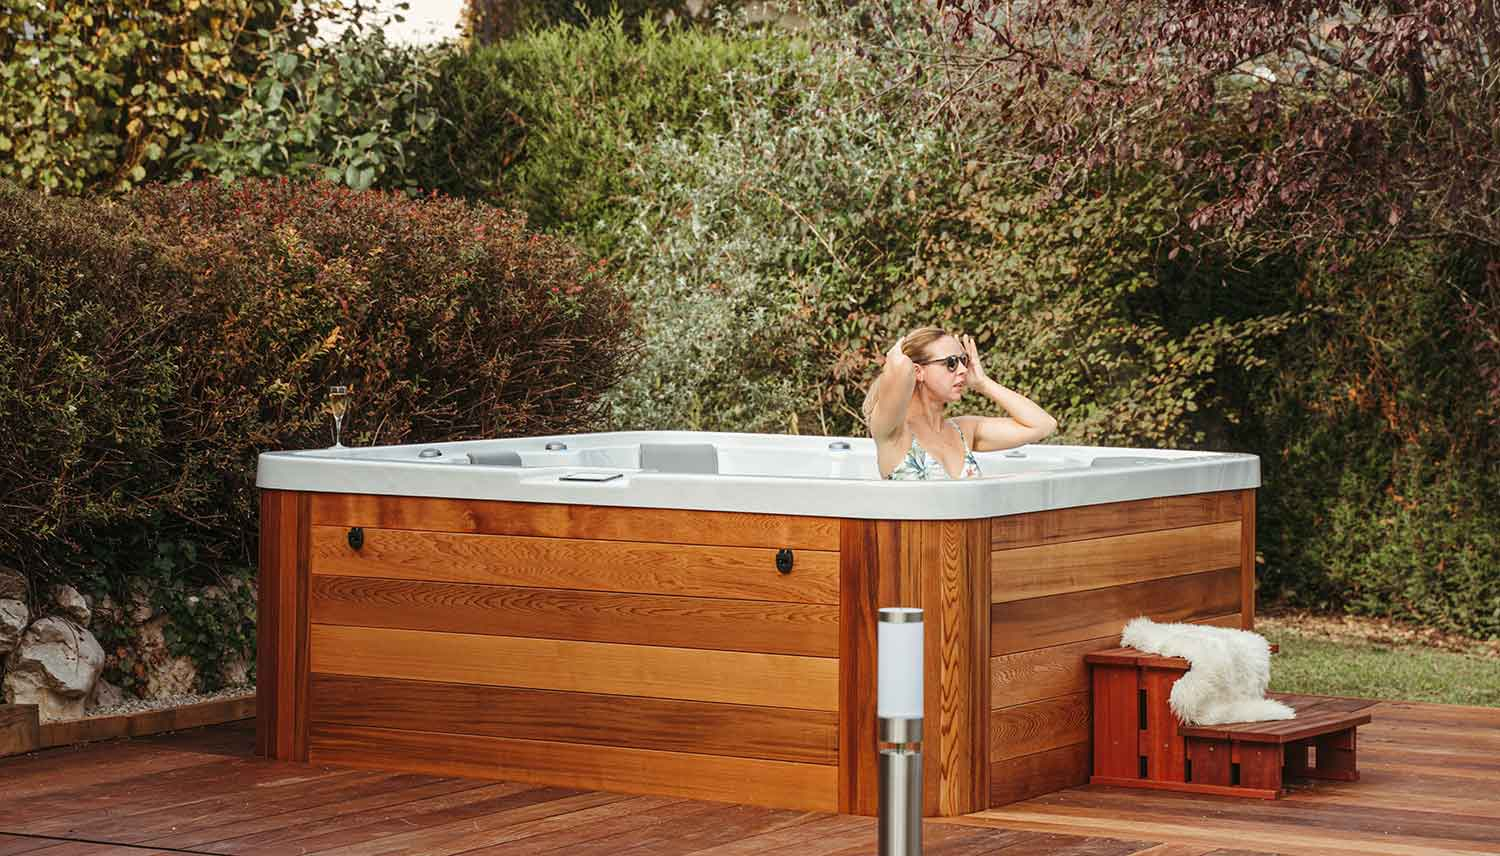 Vente Livraison Expedition France Europe Jacuzzi